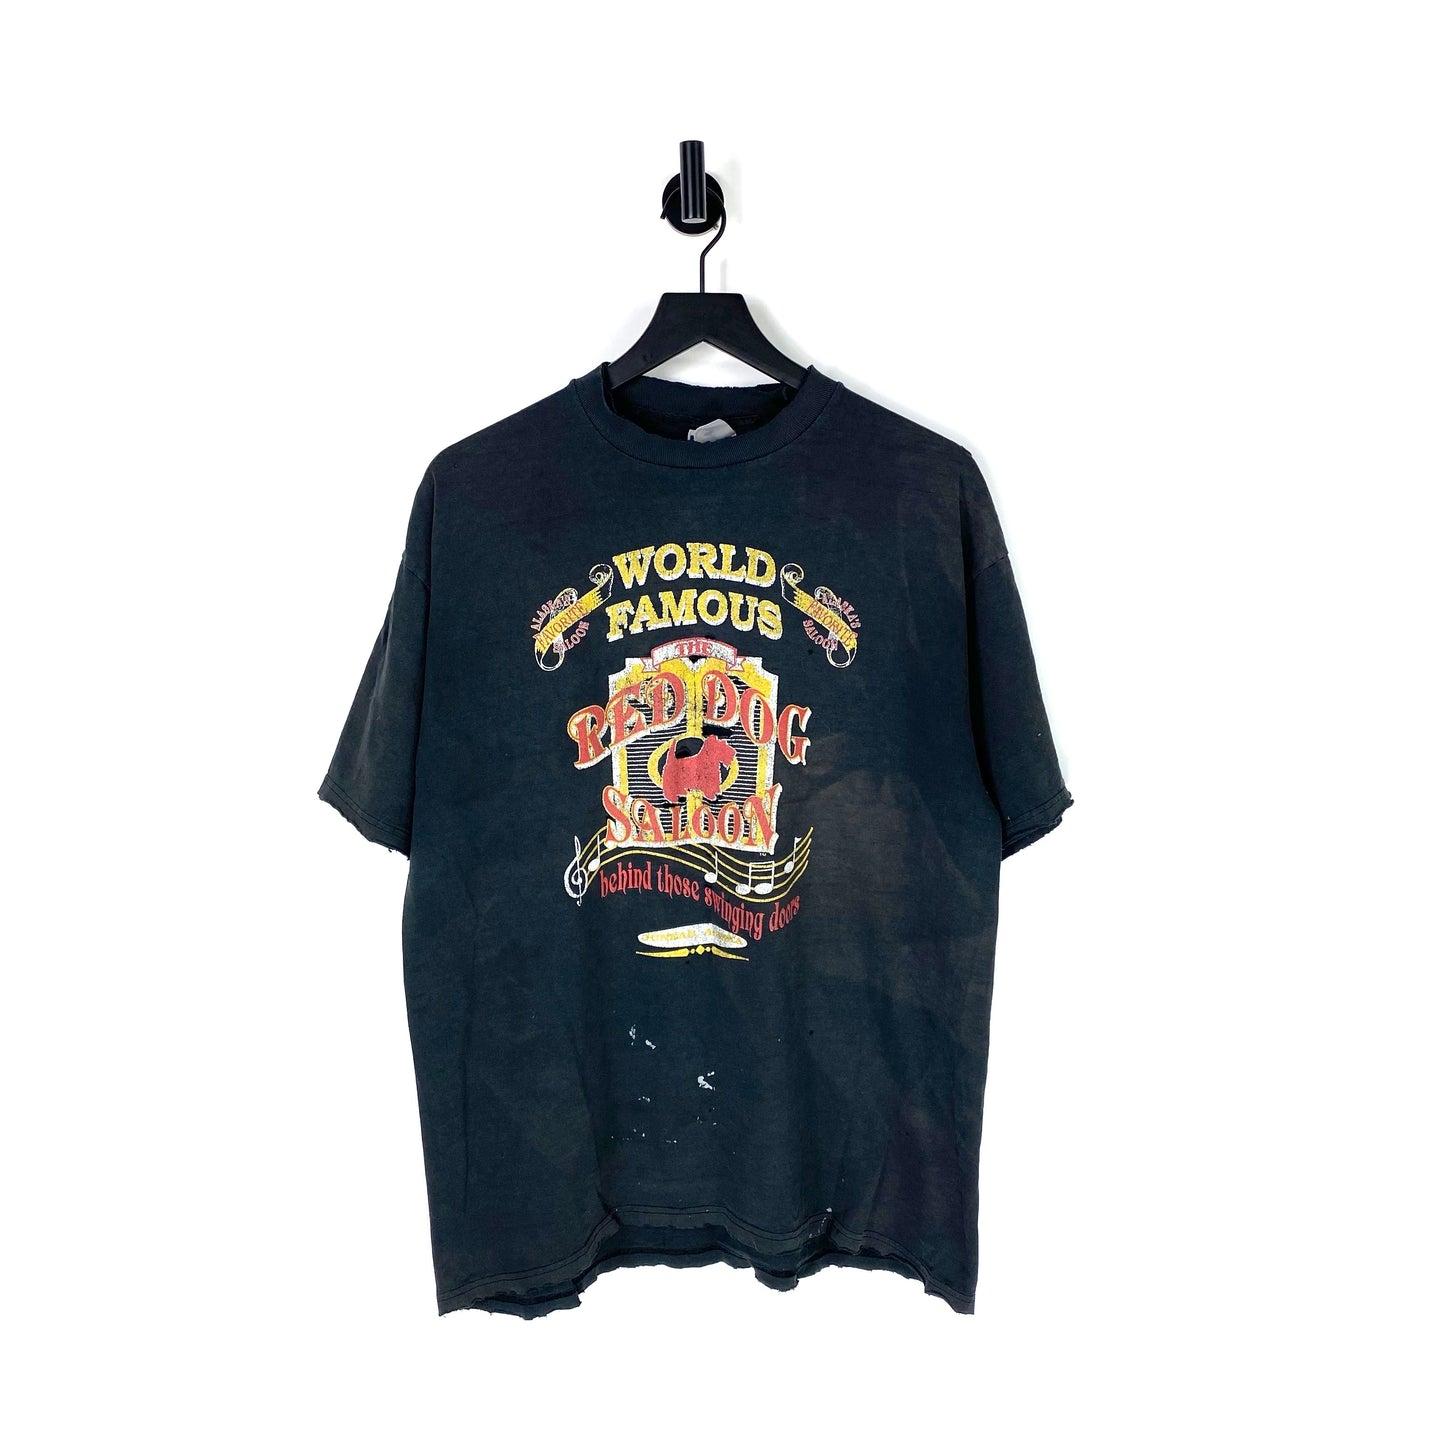 90s Saloon T Shirt - XL